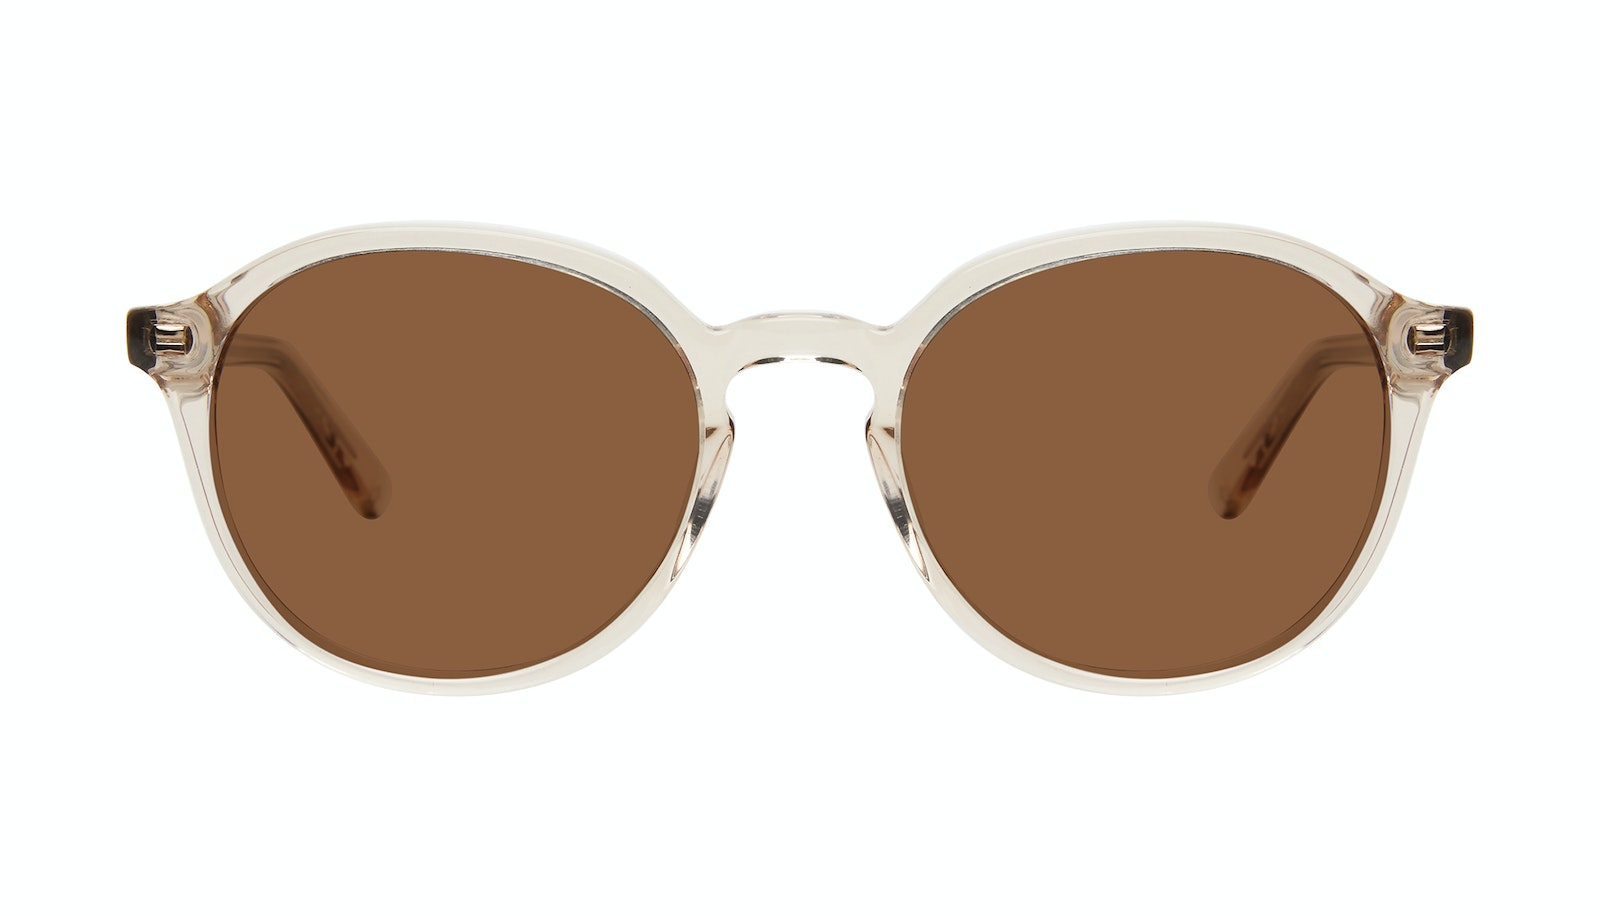 Affordable Fashion Glasses Round Sunglasses Men Ansel Golden